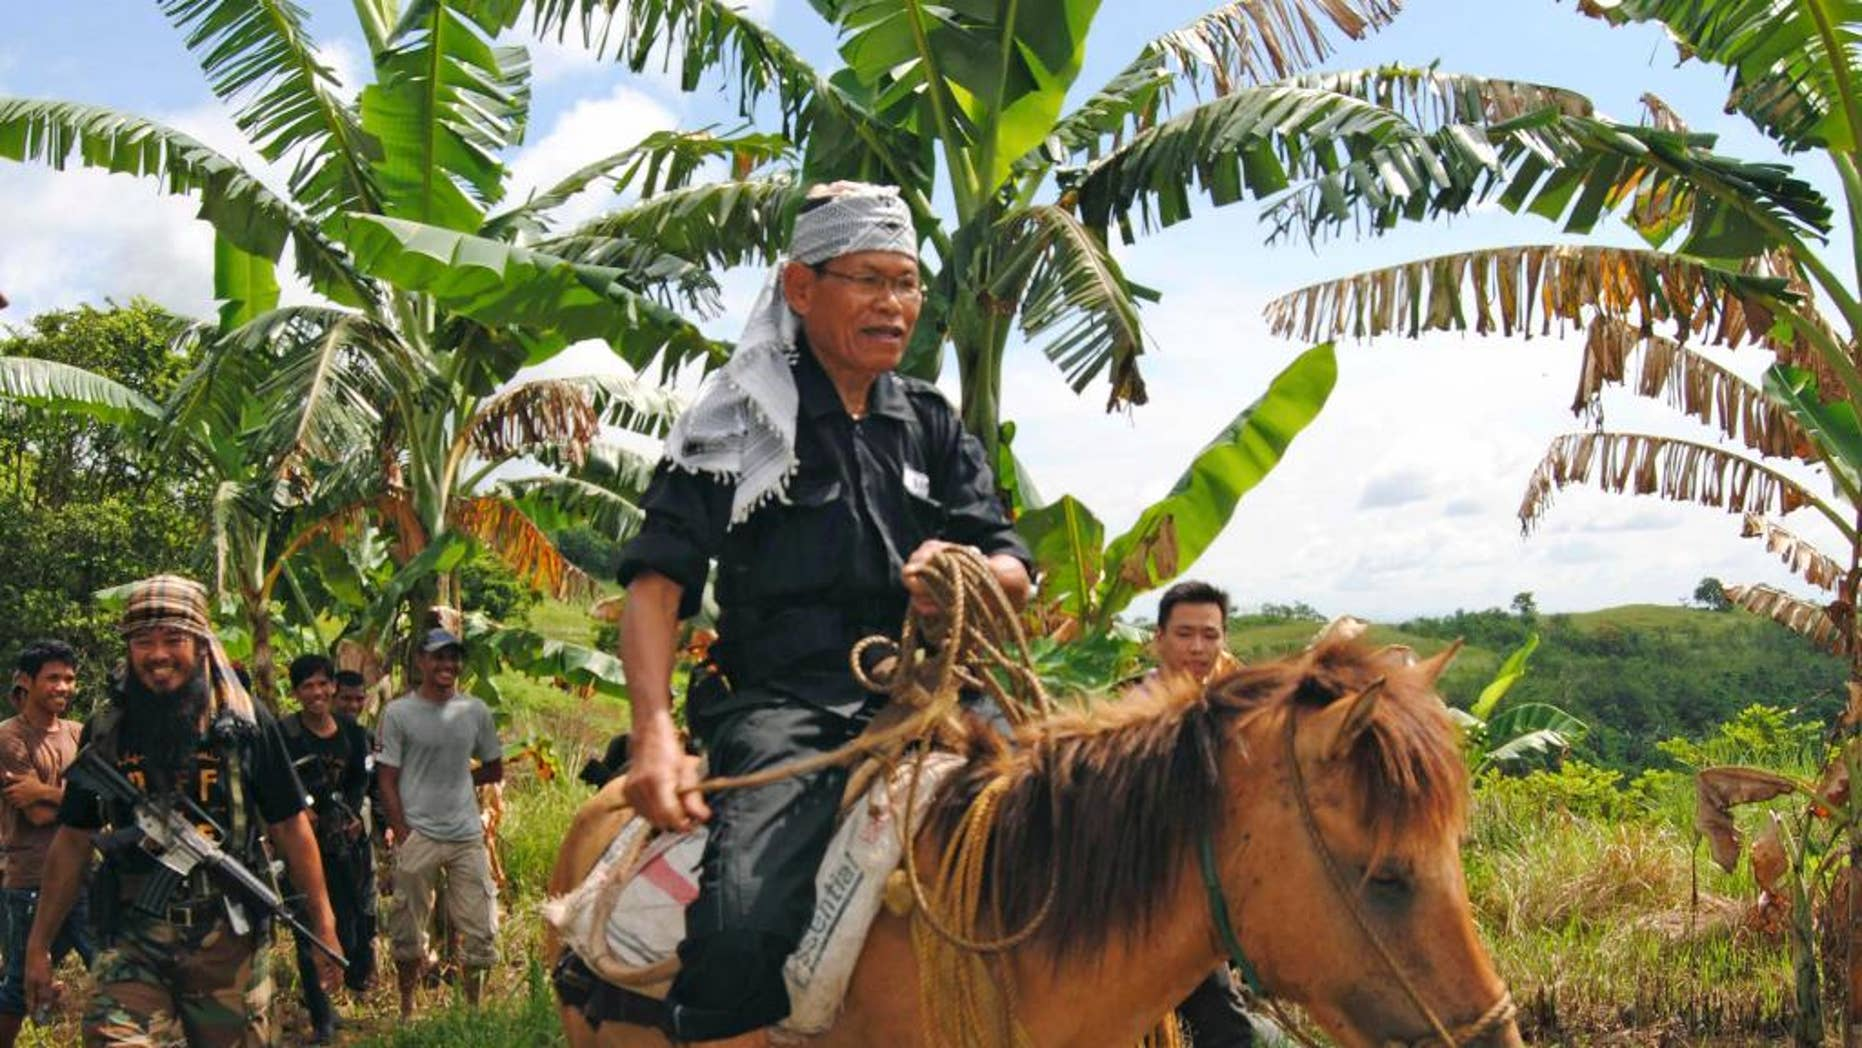 FILE - In this file photo taken Tuesday, Aug. 16, 2011, Ameril Umbra Kato, the commander of the Bangsamoro Islamic Freedom Movement, rides a horse inside his rebel stronghold in Maguindanao province in southern Philippines. The commander whose rebels have pledged support to the Islamic State group died Tuesday following a long ailment, the Philippine military and insurgents said Wednesday, April 15, 2015. (AP Photo/Nickee Butlangan, File)